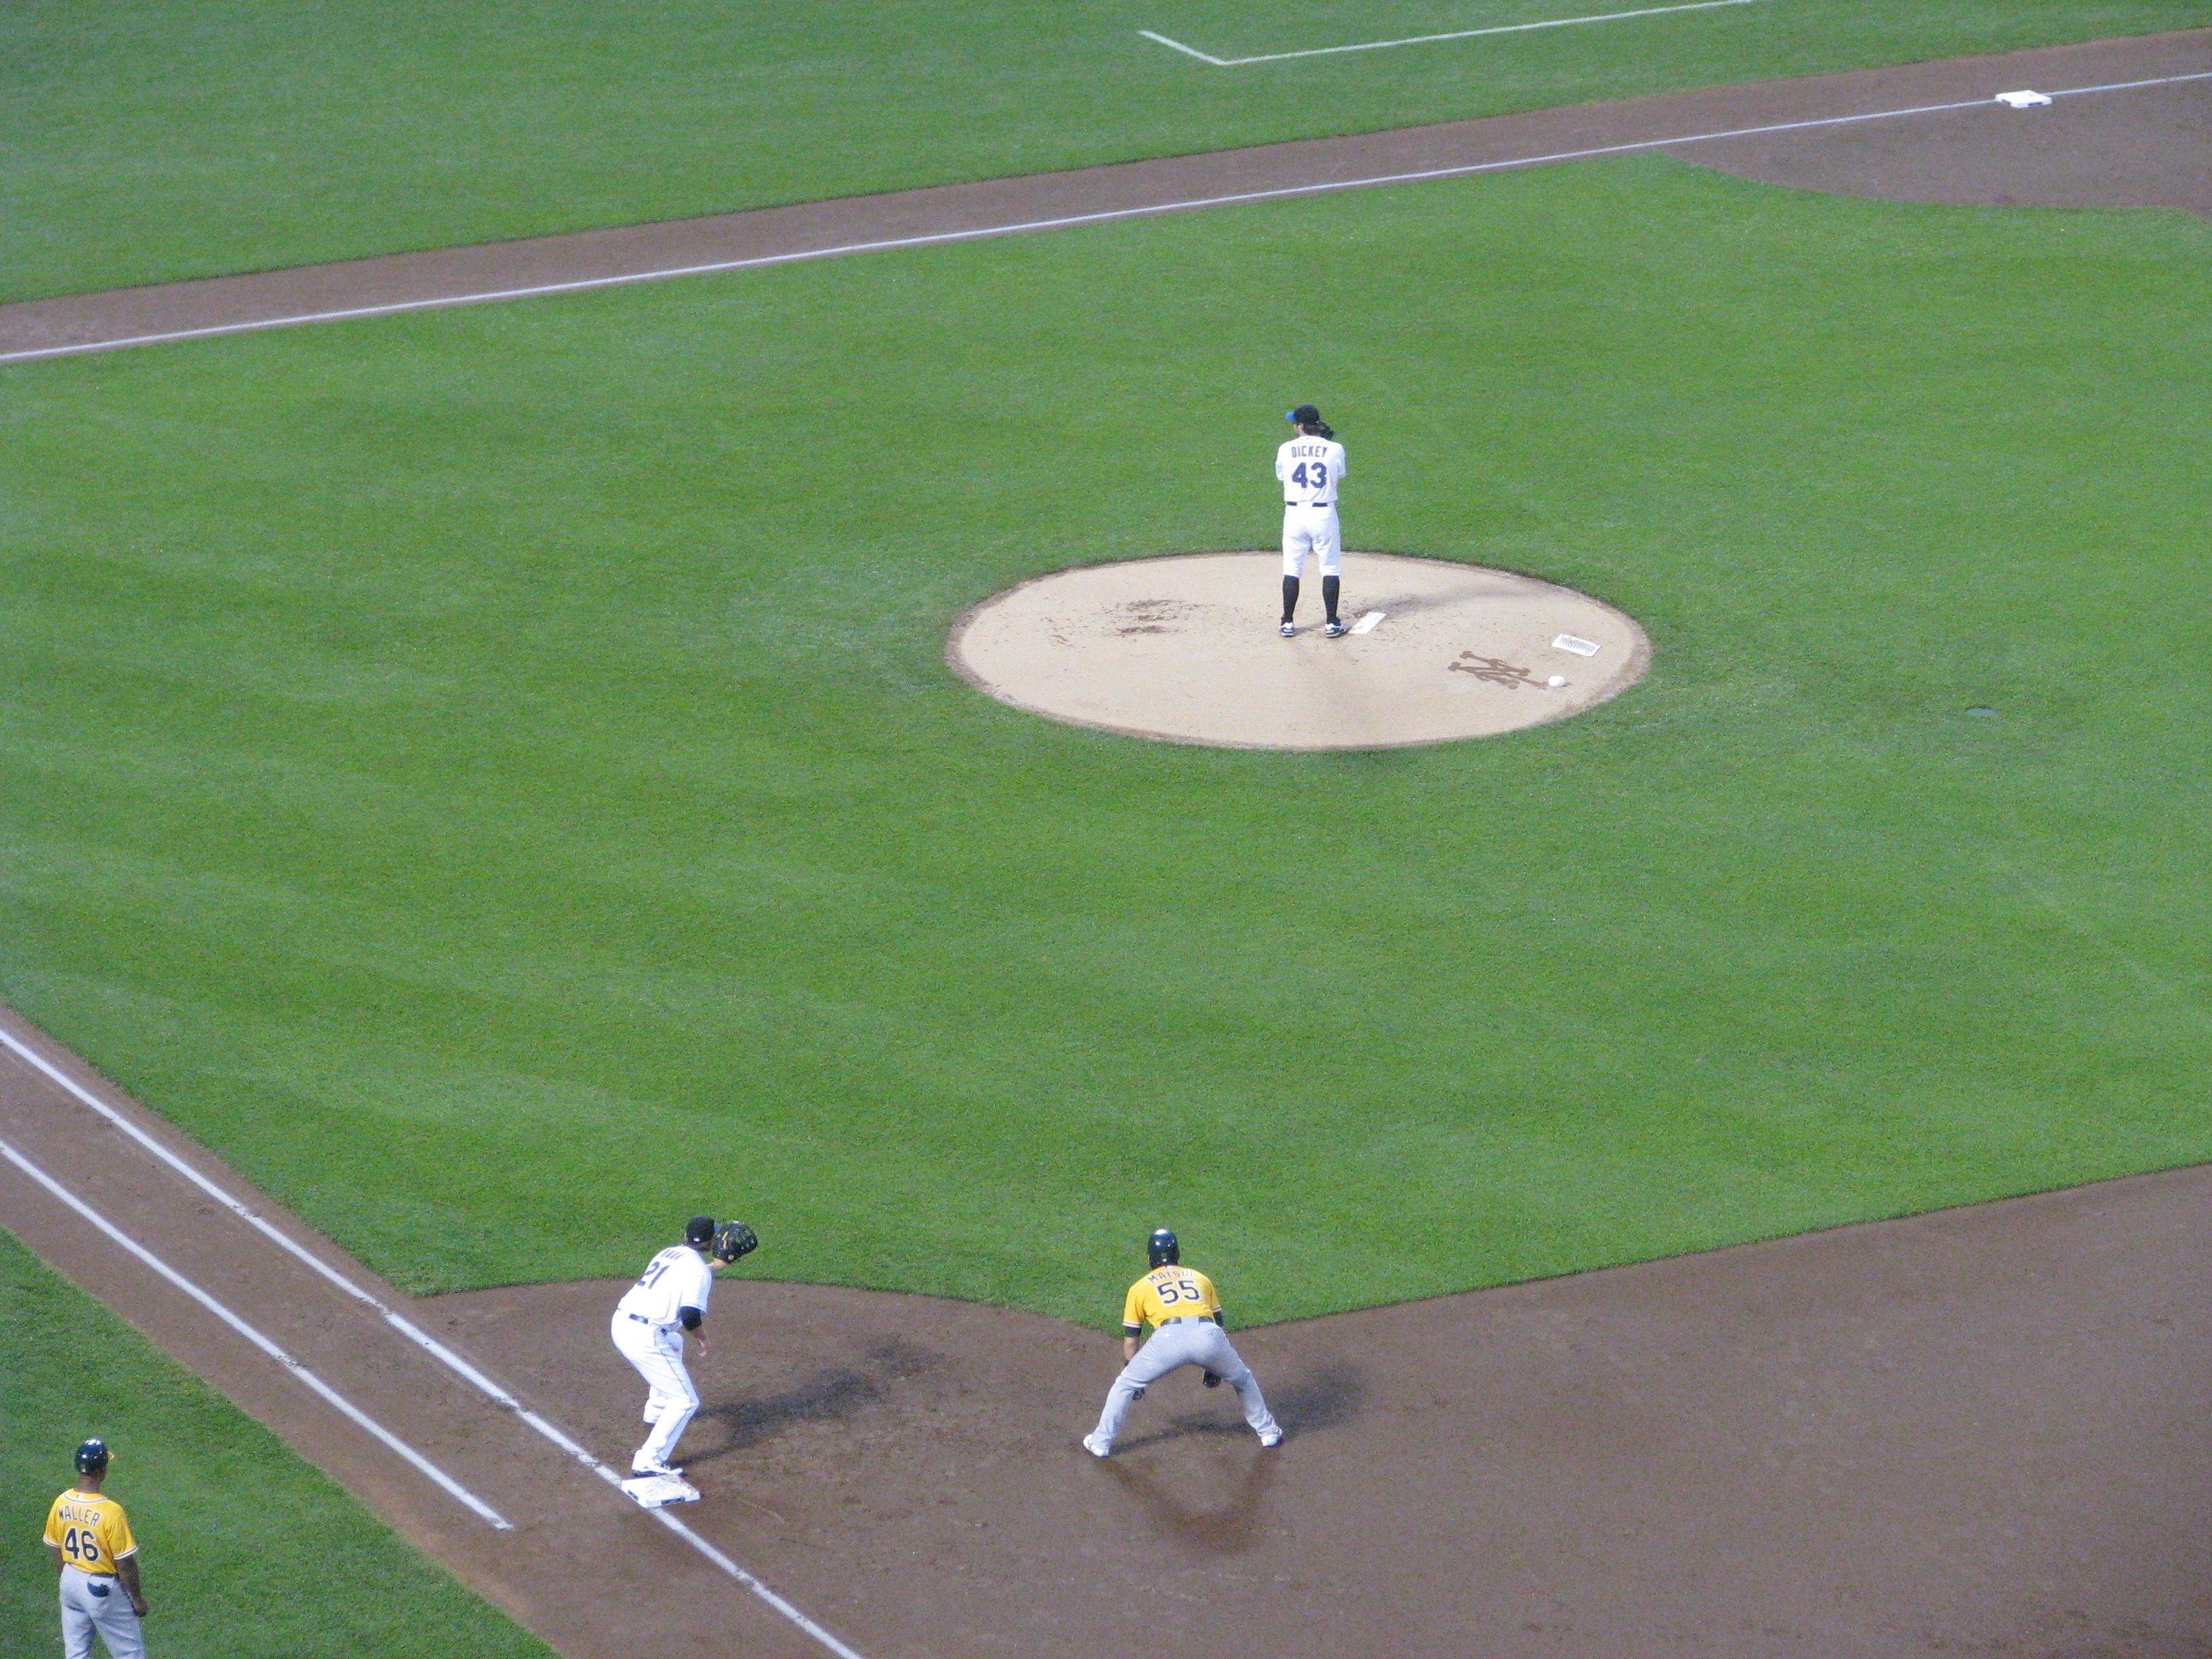 R.A. Dickey pitching for the Mets in 2011